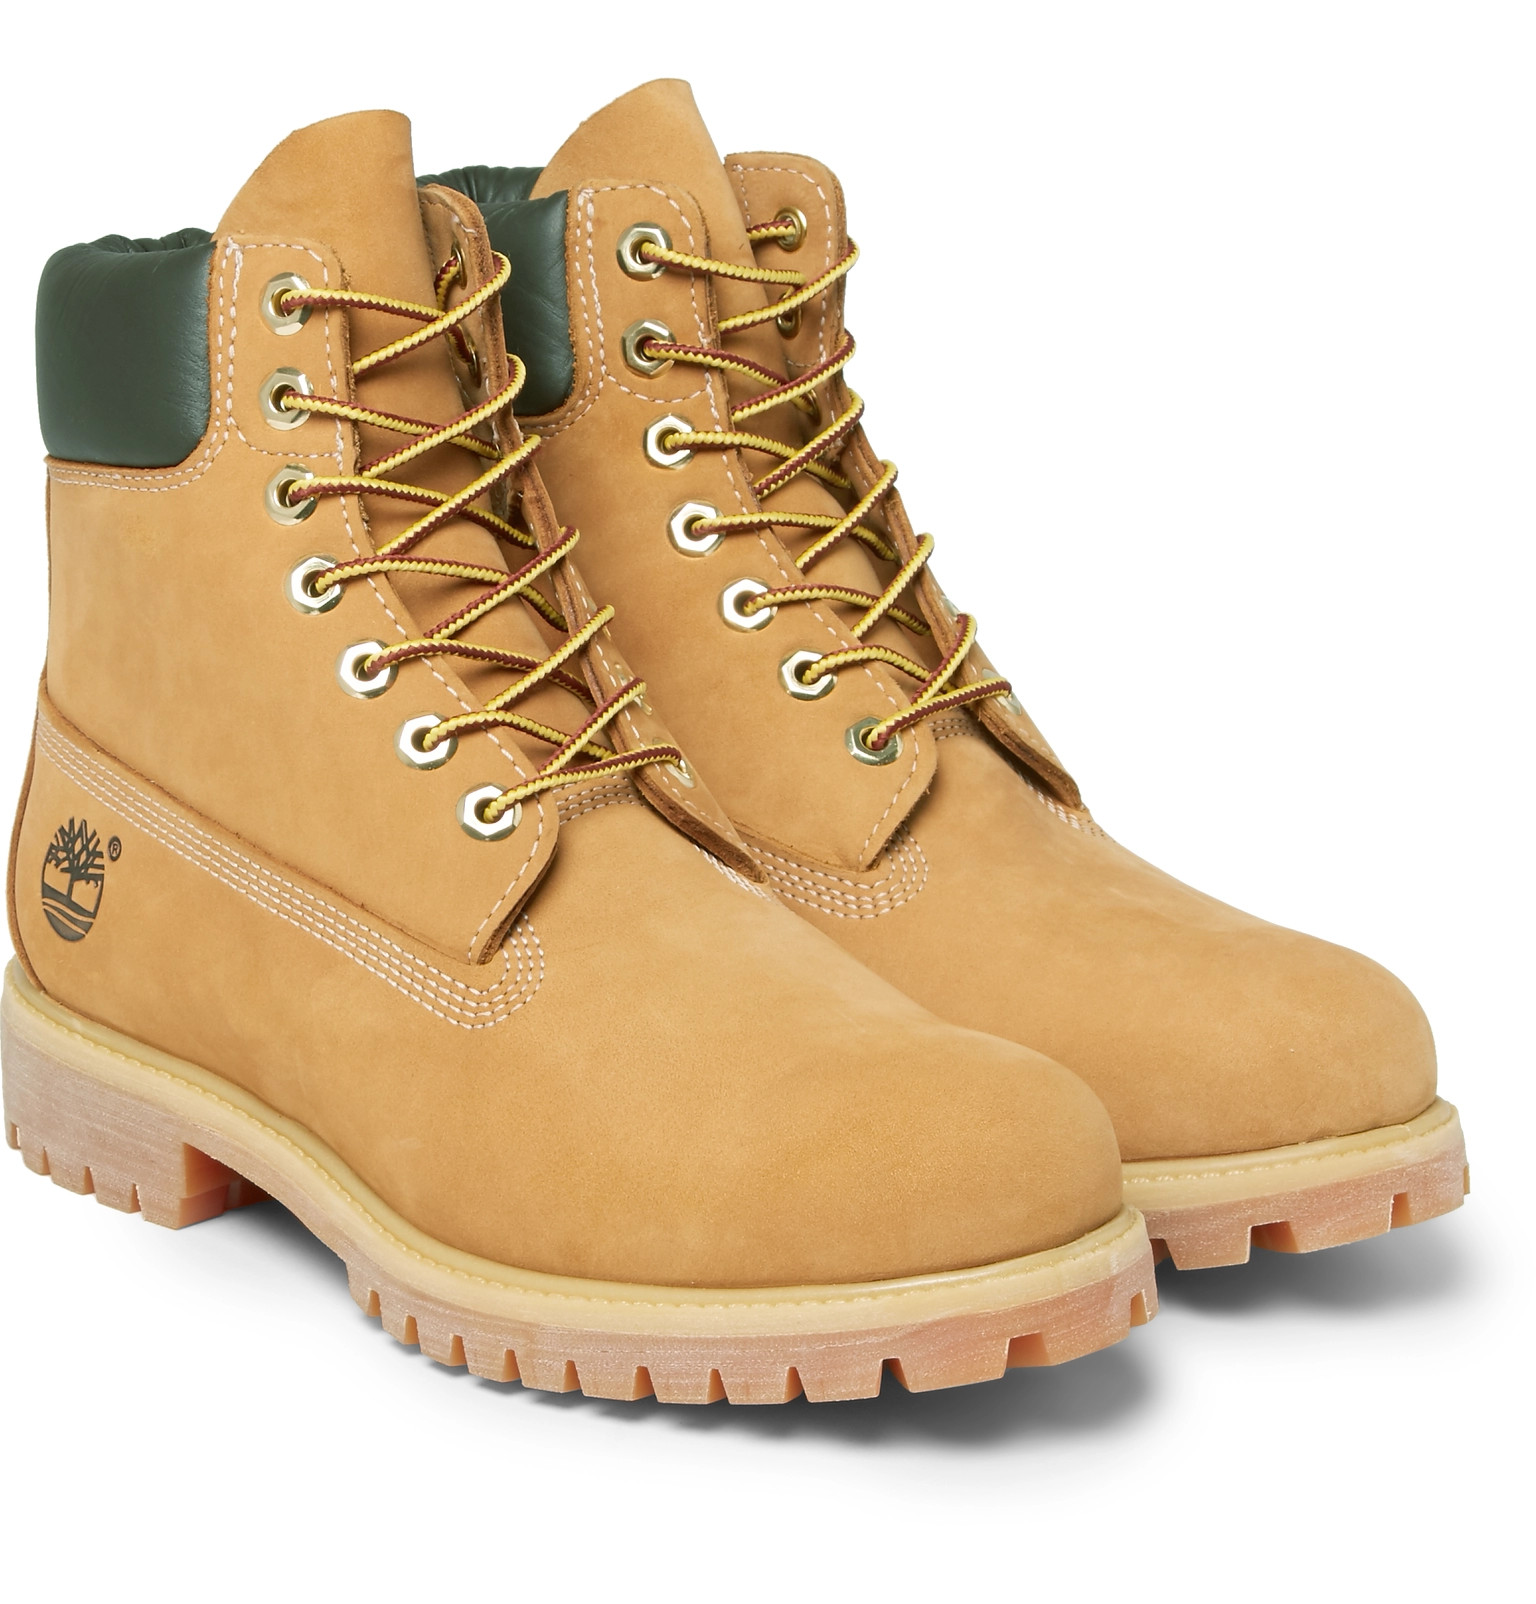 a3994ce377af How The Timberland Boot Became A Cultural Icon